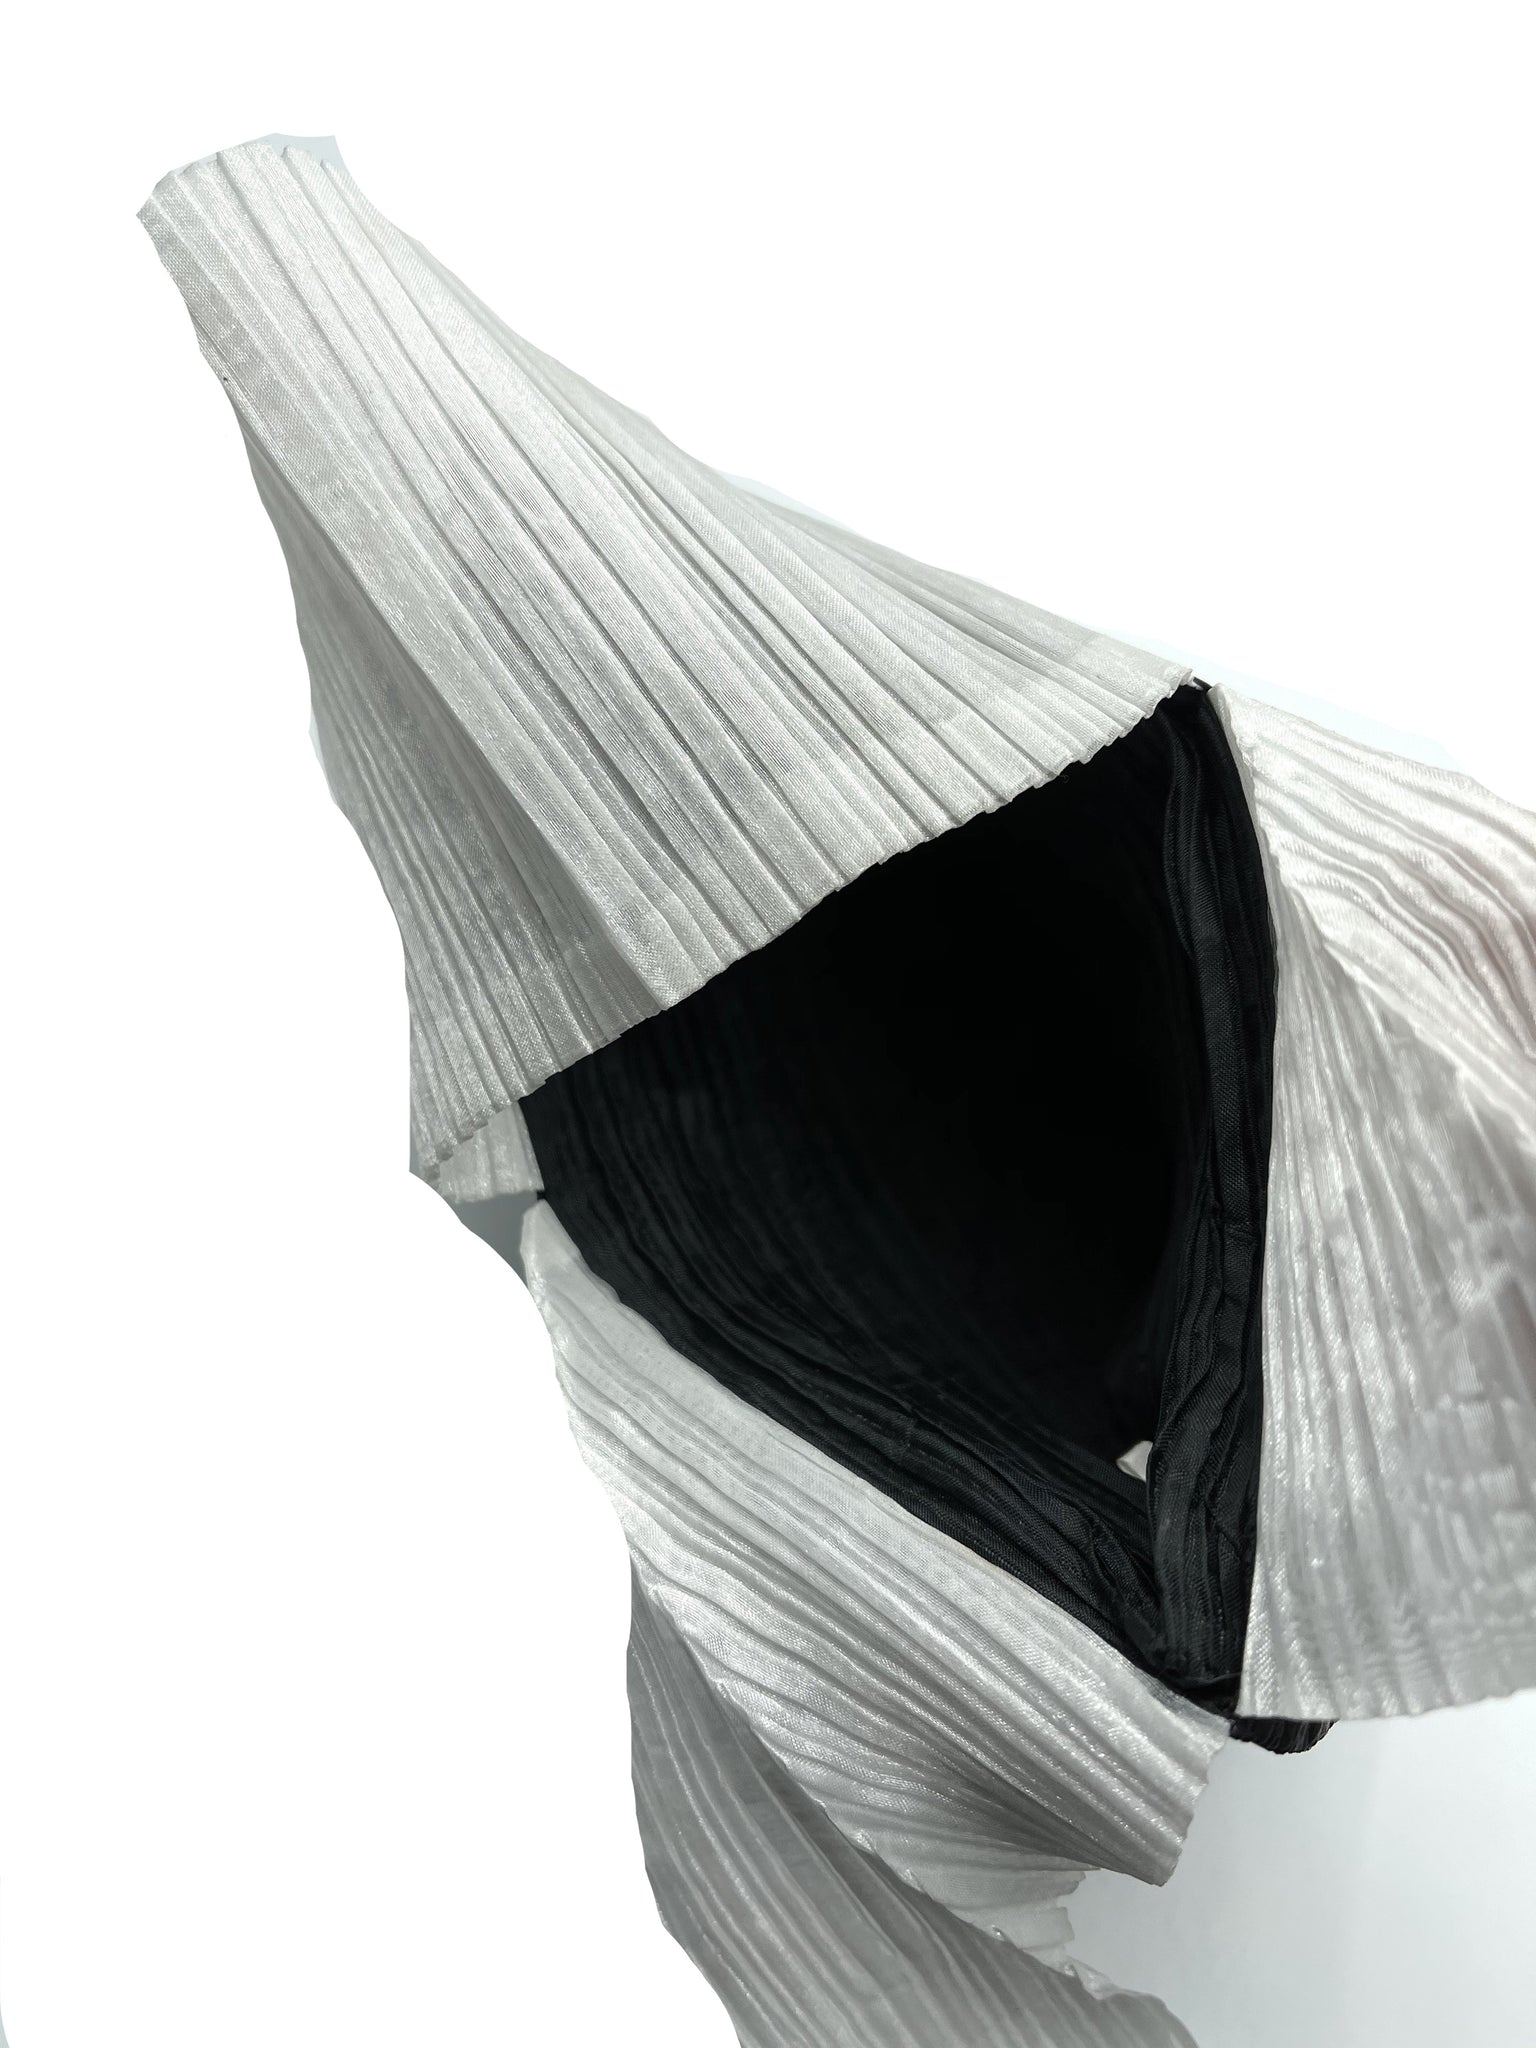 Issey Miyake 90s Black and White Pleated Purse INTERIOR 5 of 5